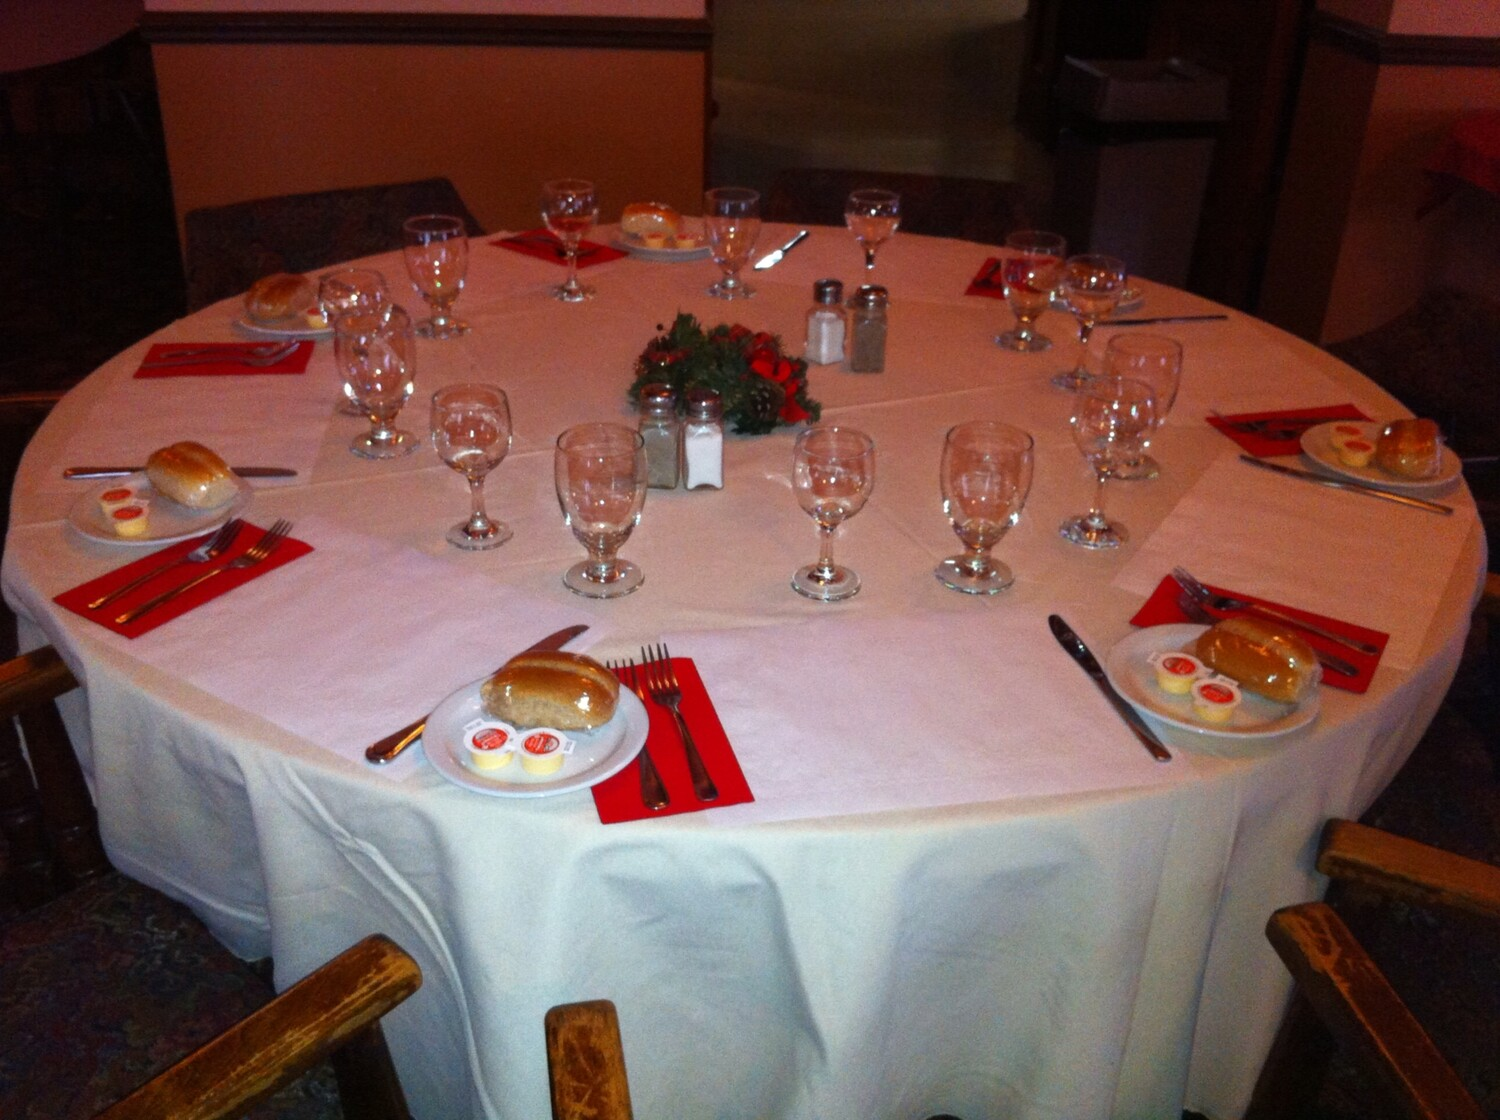 In house catering - Full Service Entrees - Additional hall rental fees apply